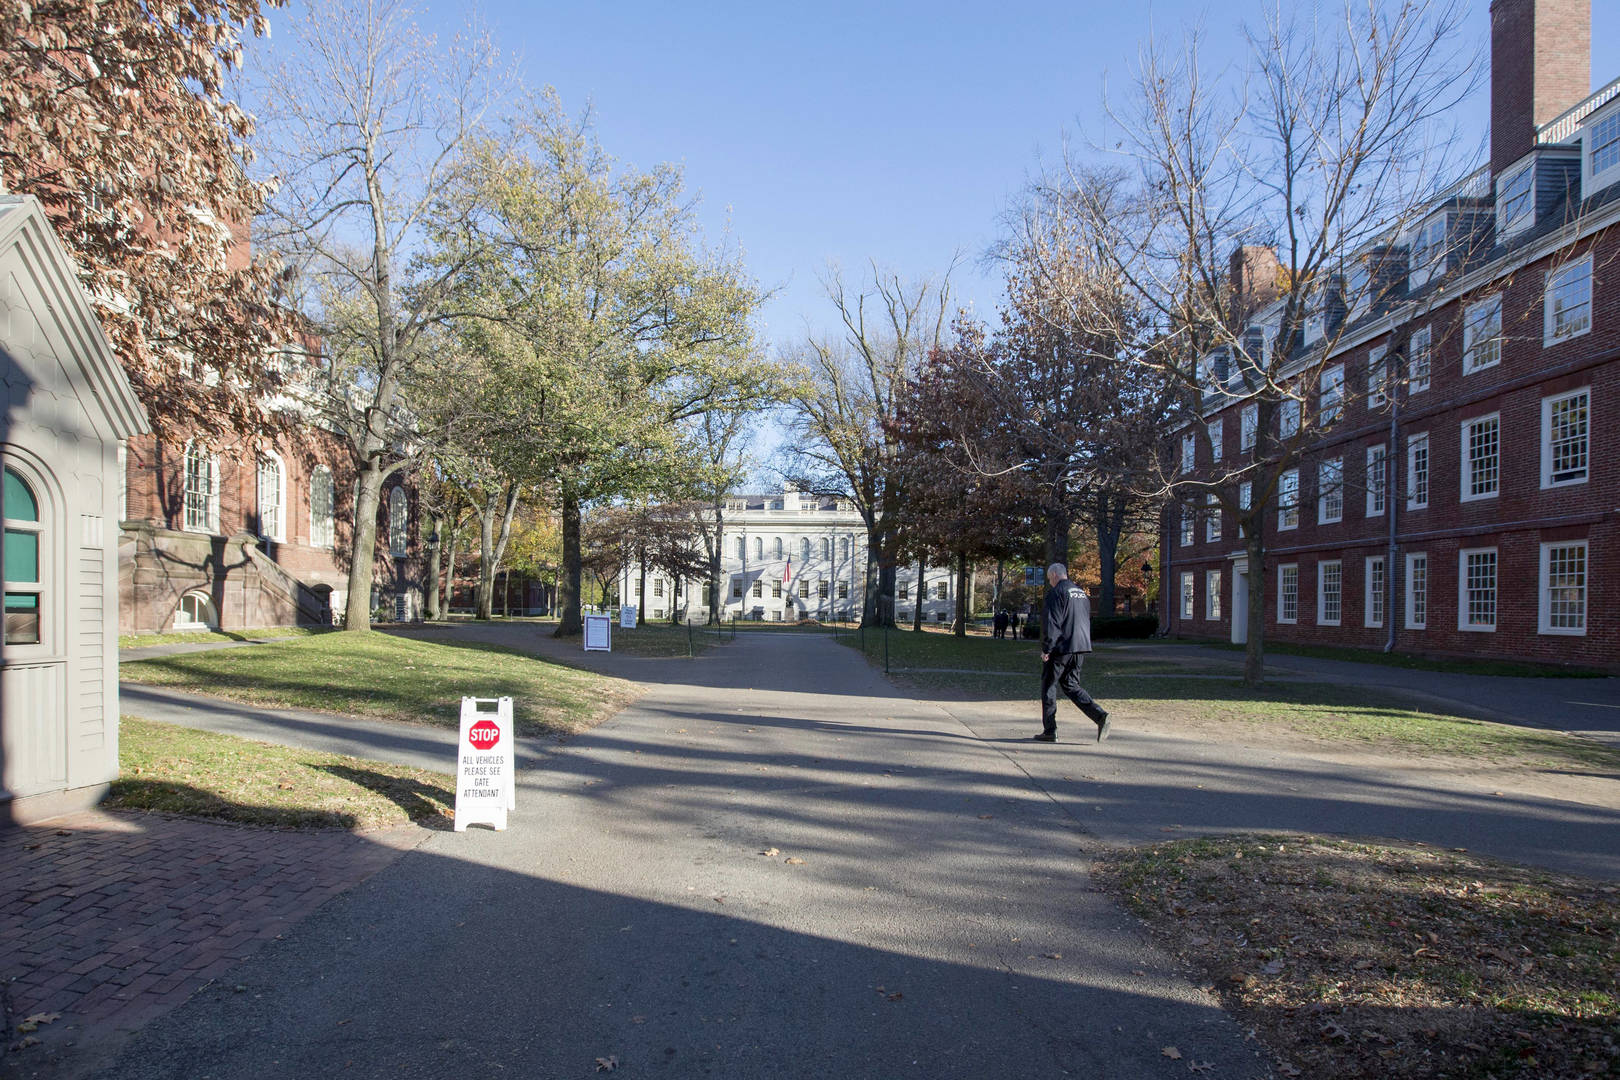 Coronavirus Harvard University Shutdown Lockdown Evacuation